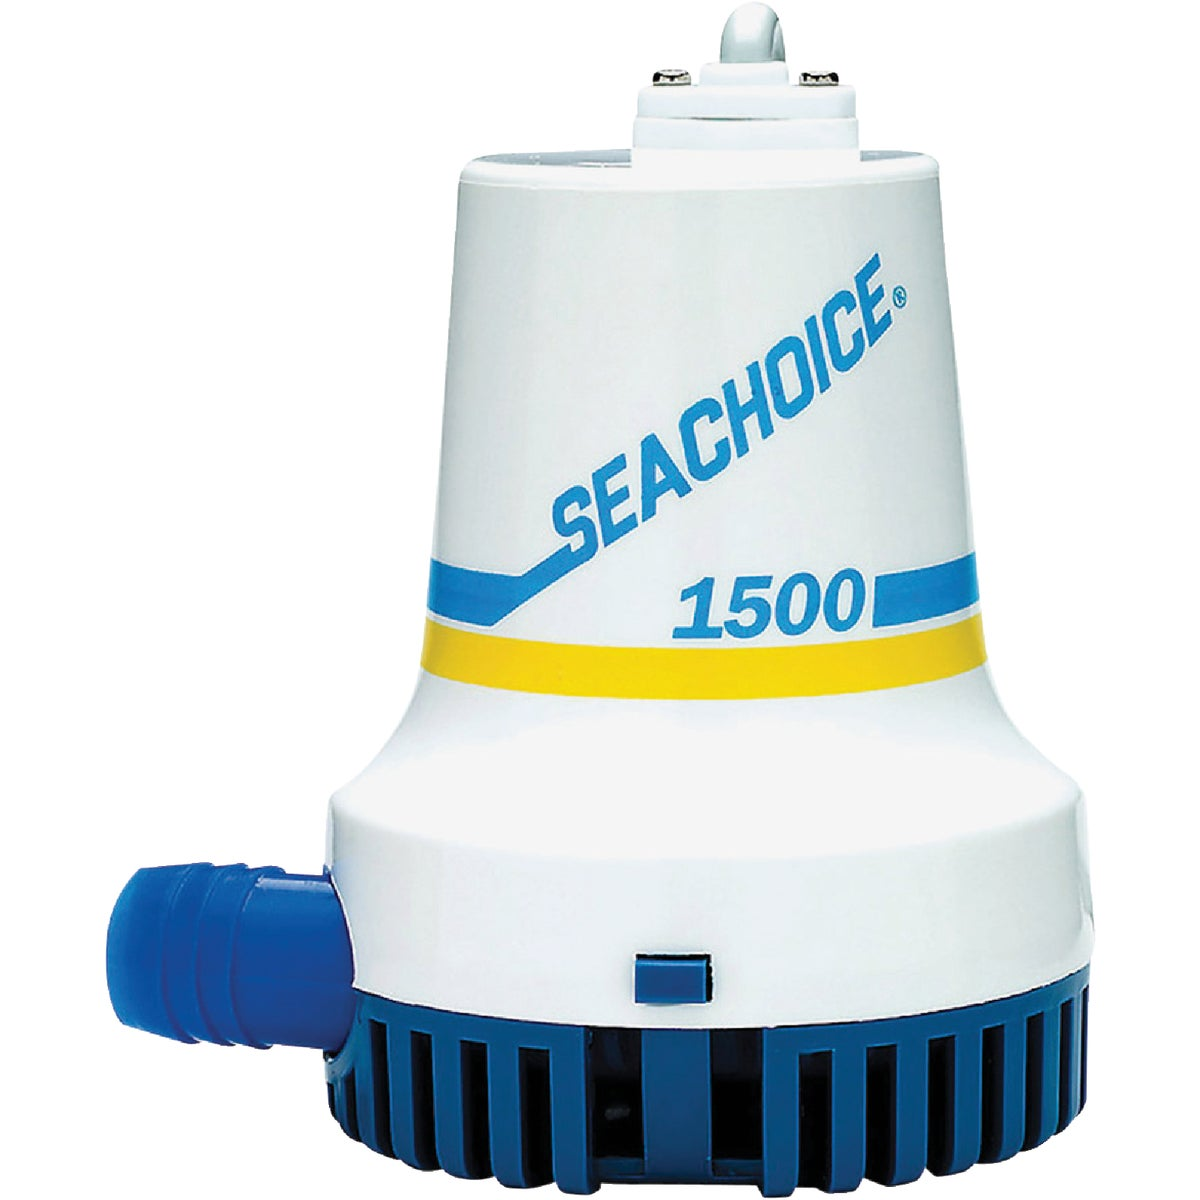 1500GPH BILGE PUMP - 19291 by Seachoice Prod